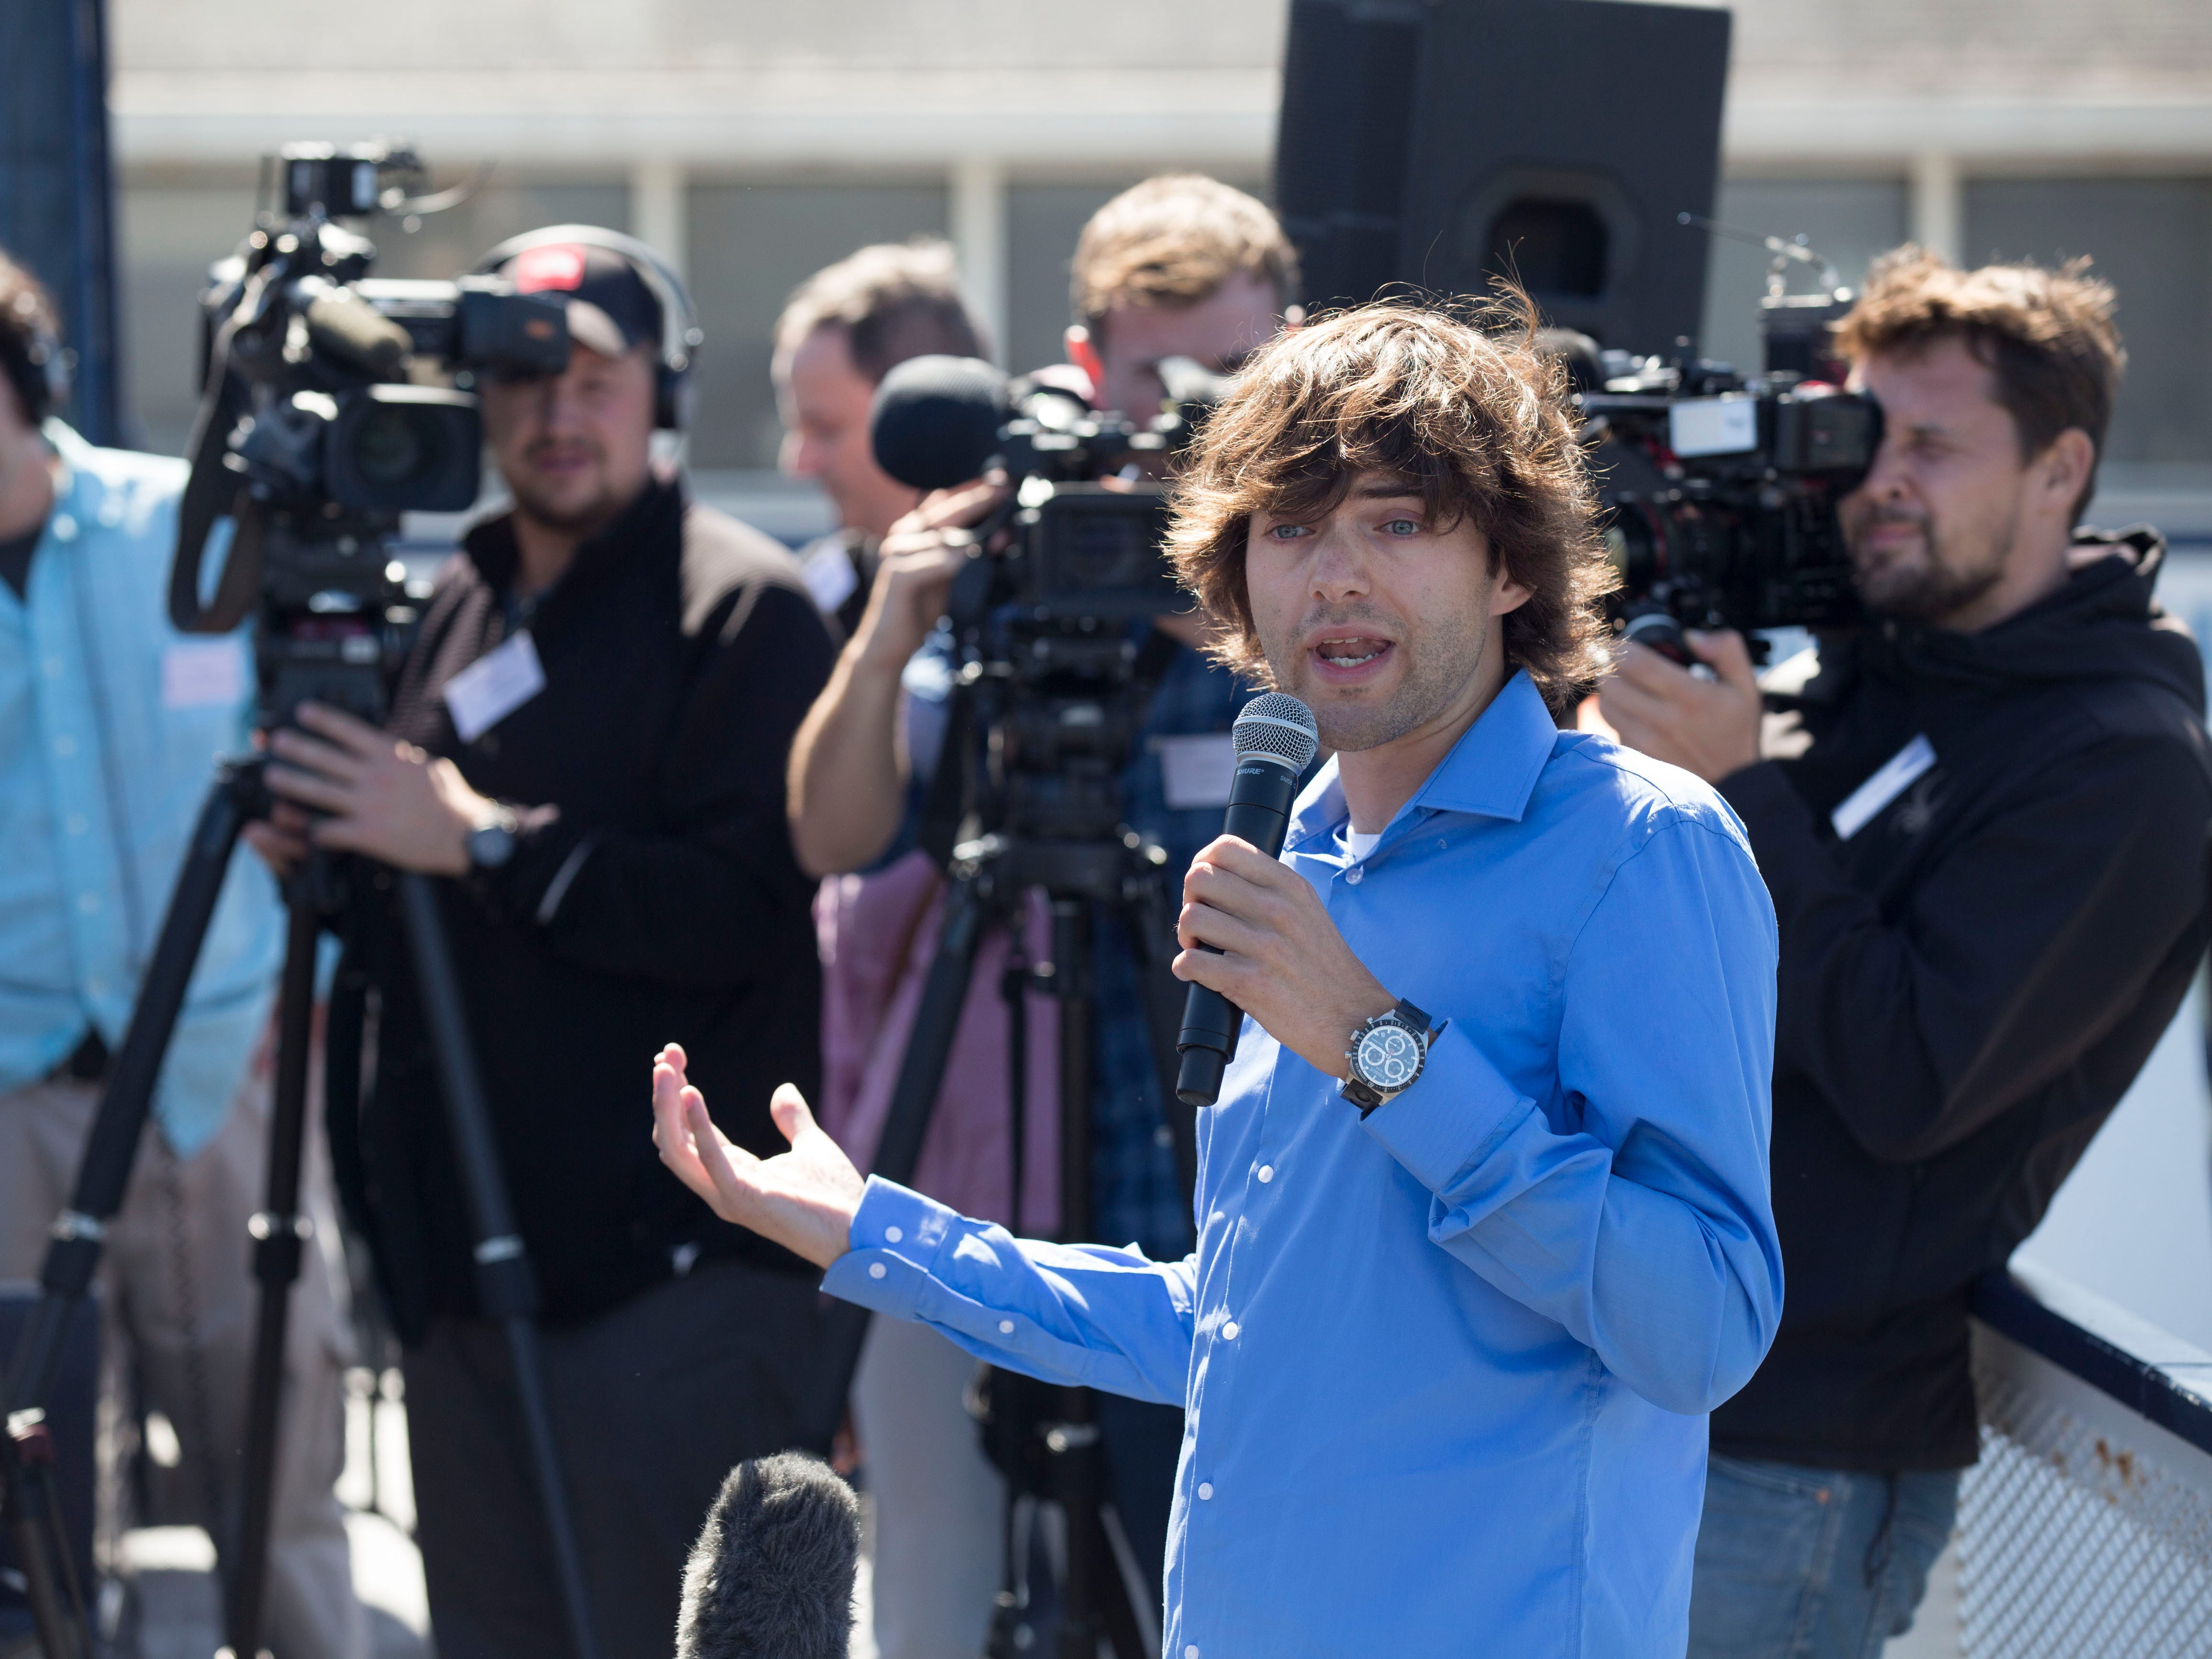 The Ocean Cleanup Project CEO and Founder Boyan Slat, 24, addresses the media at Pier 41 in San Francisco on Sept. 8, 2018.